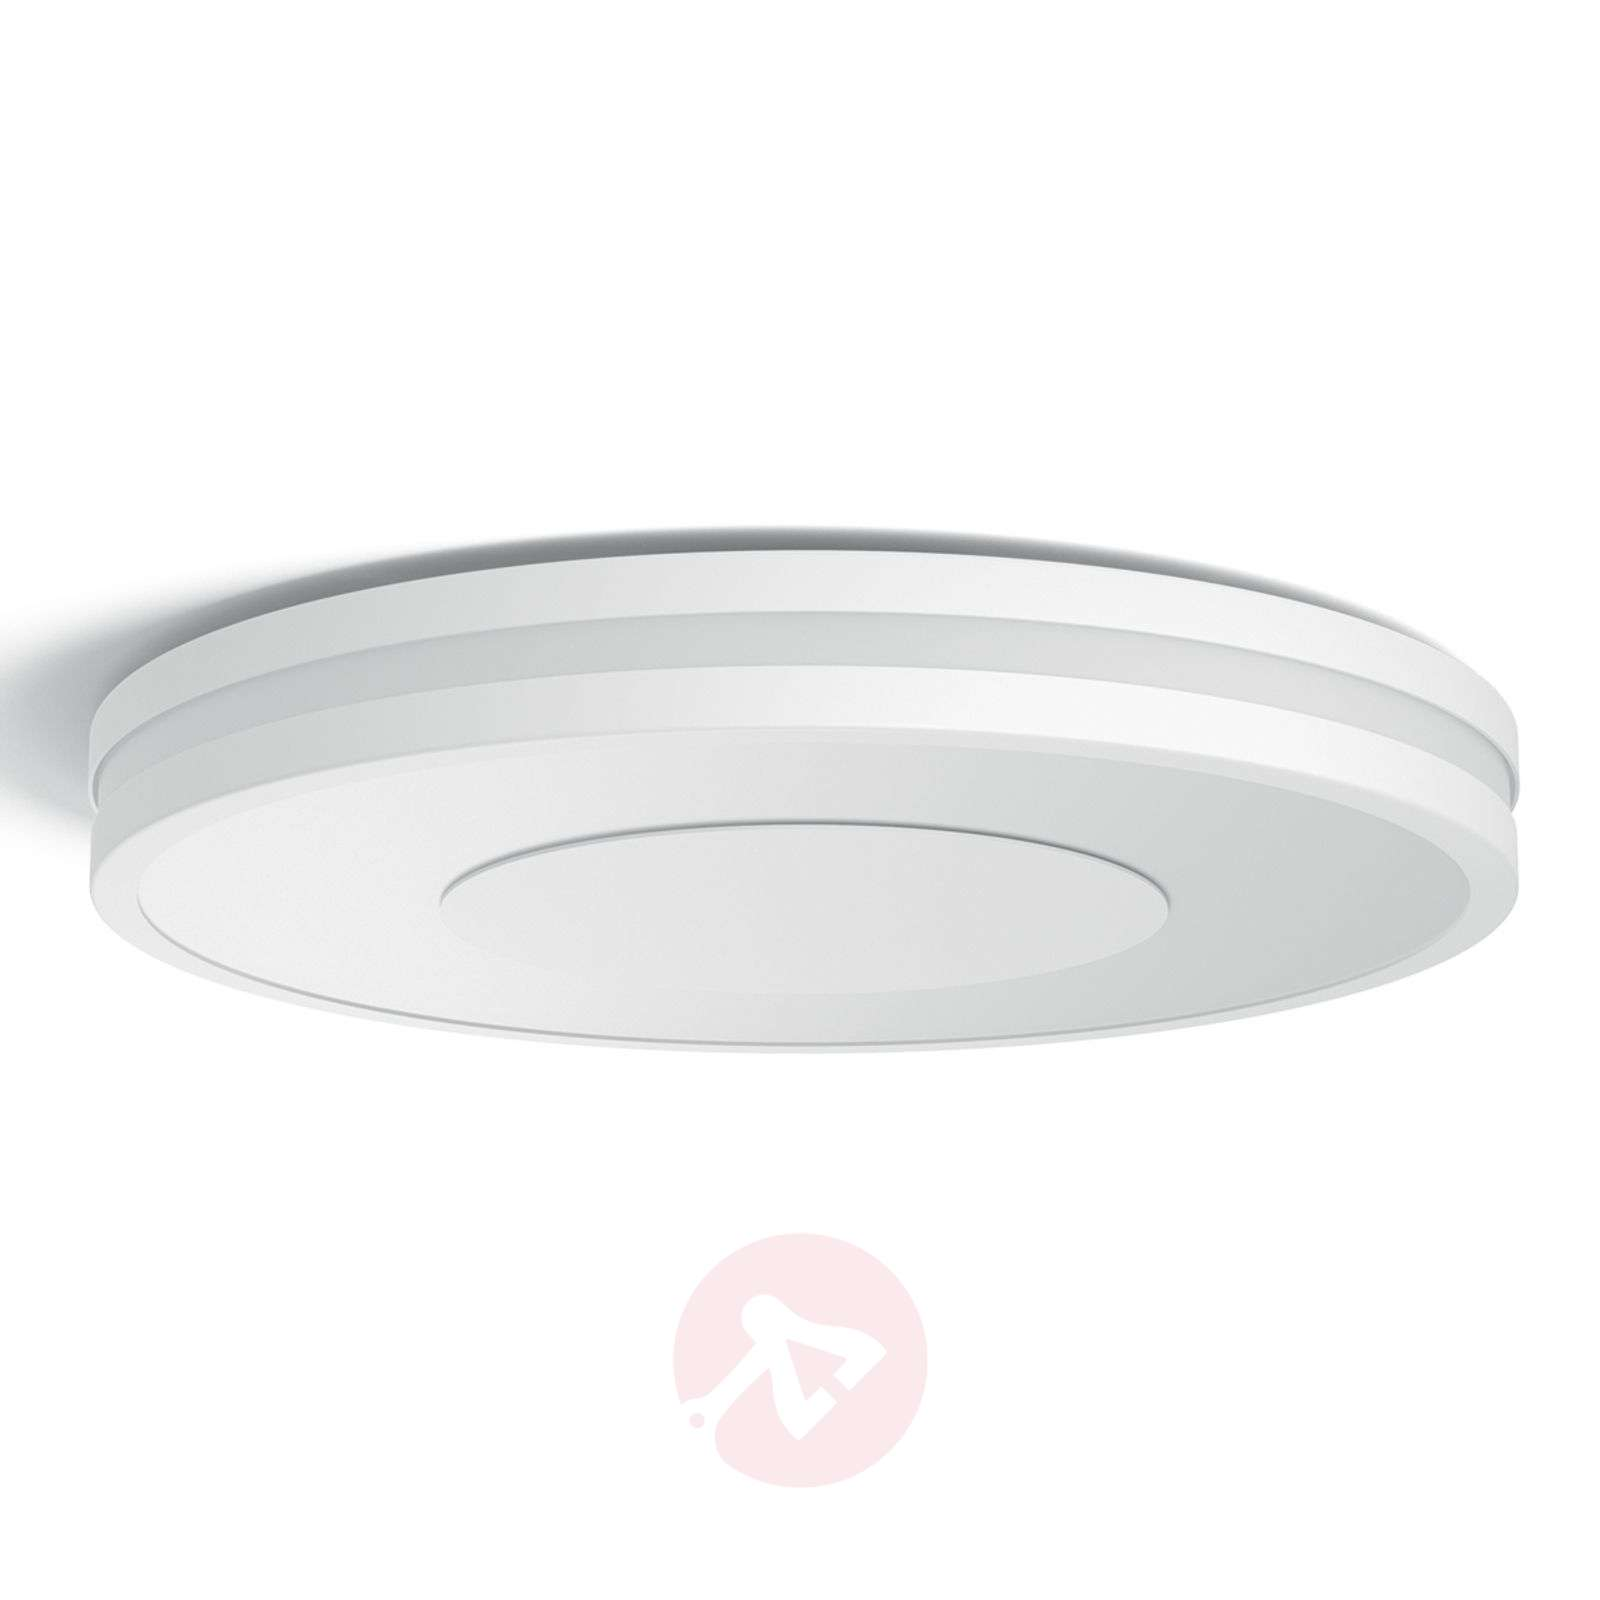 Plafonnier LED fonctionnel Philips Hue Being-7531866-01